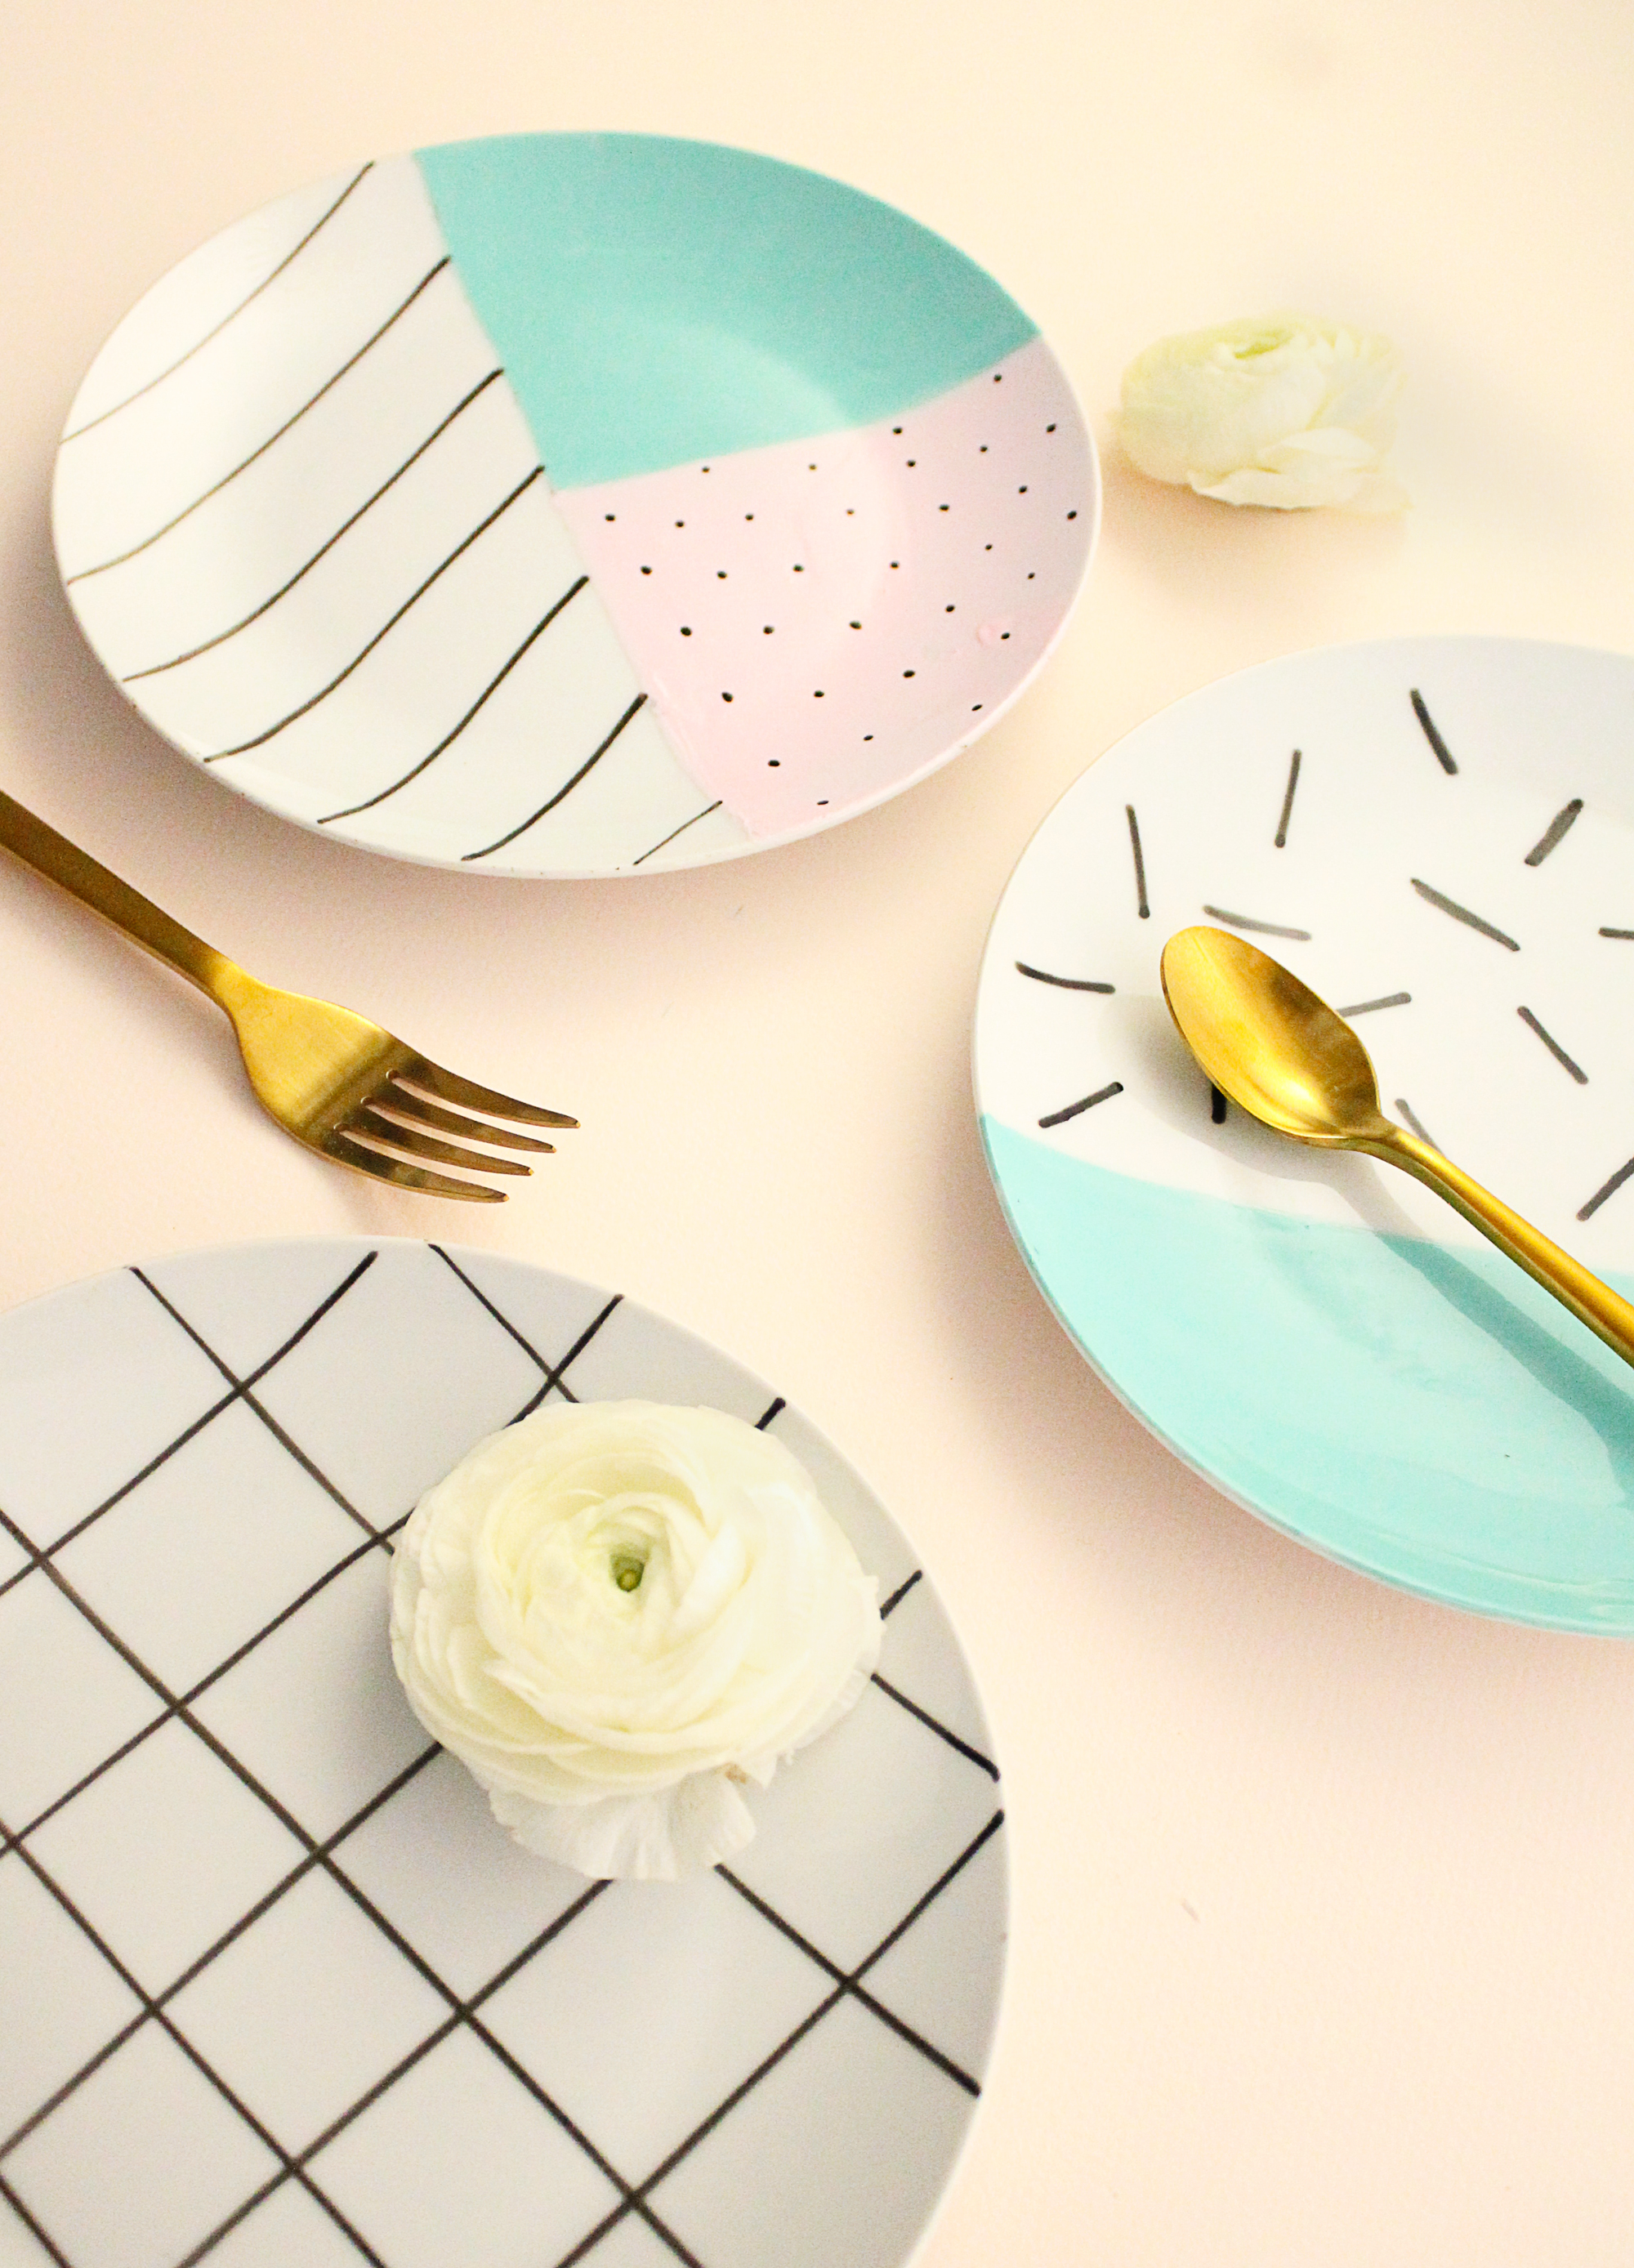 diy-assiettes-ceramique-fini-2